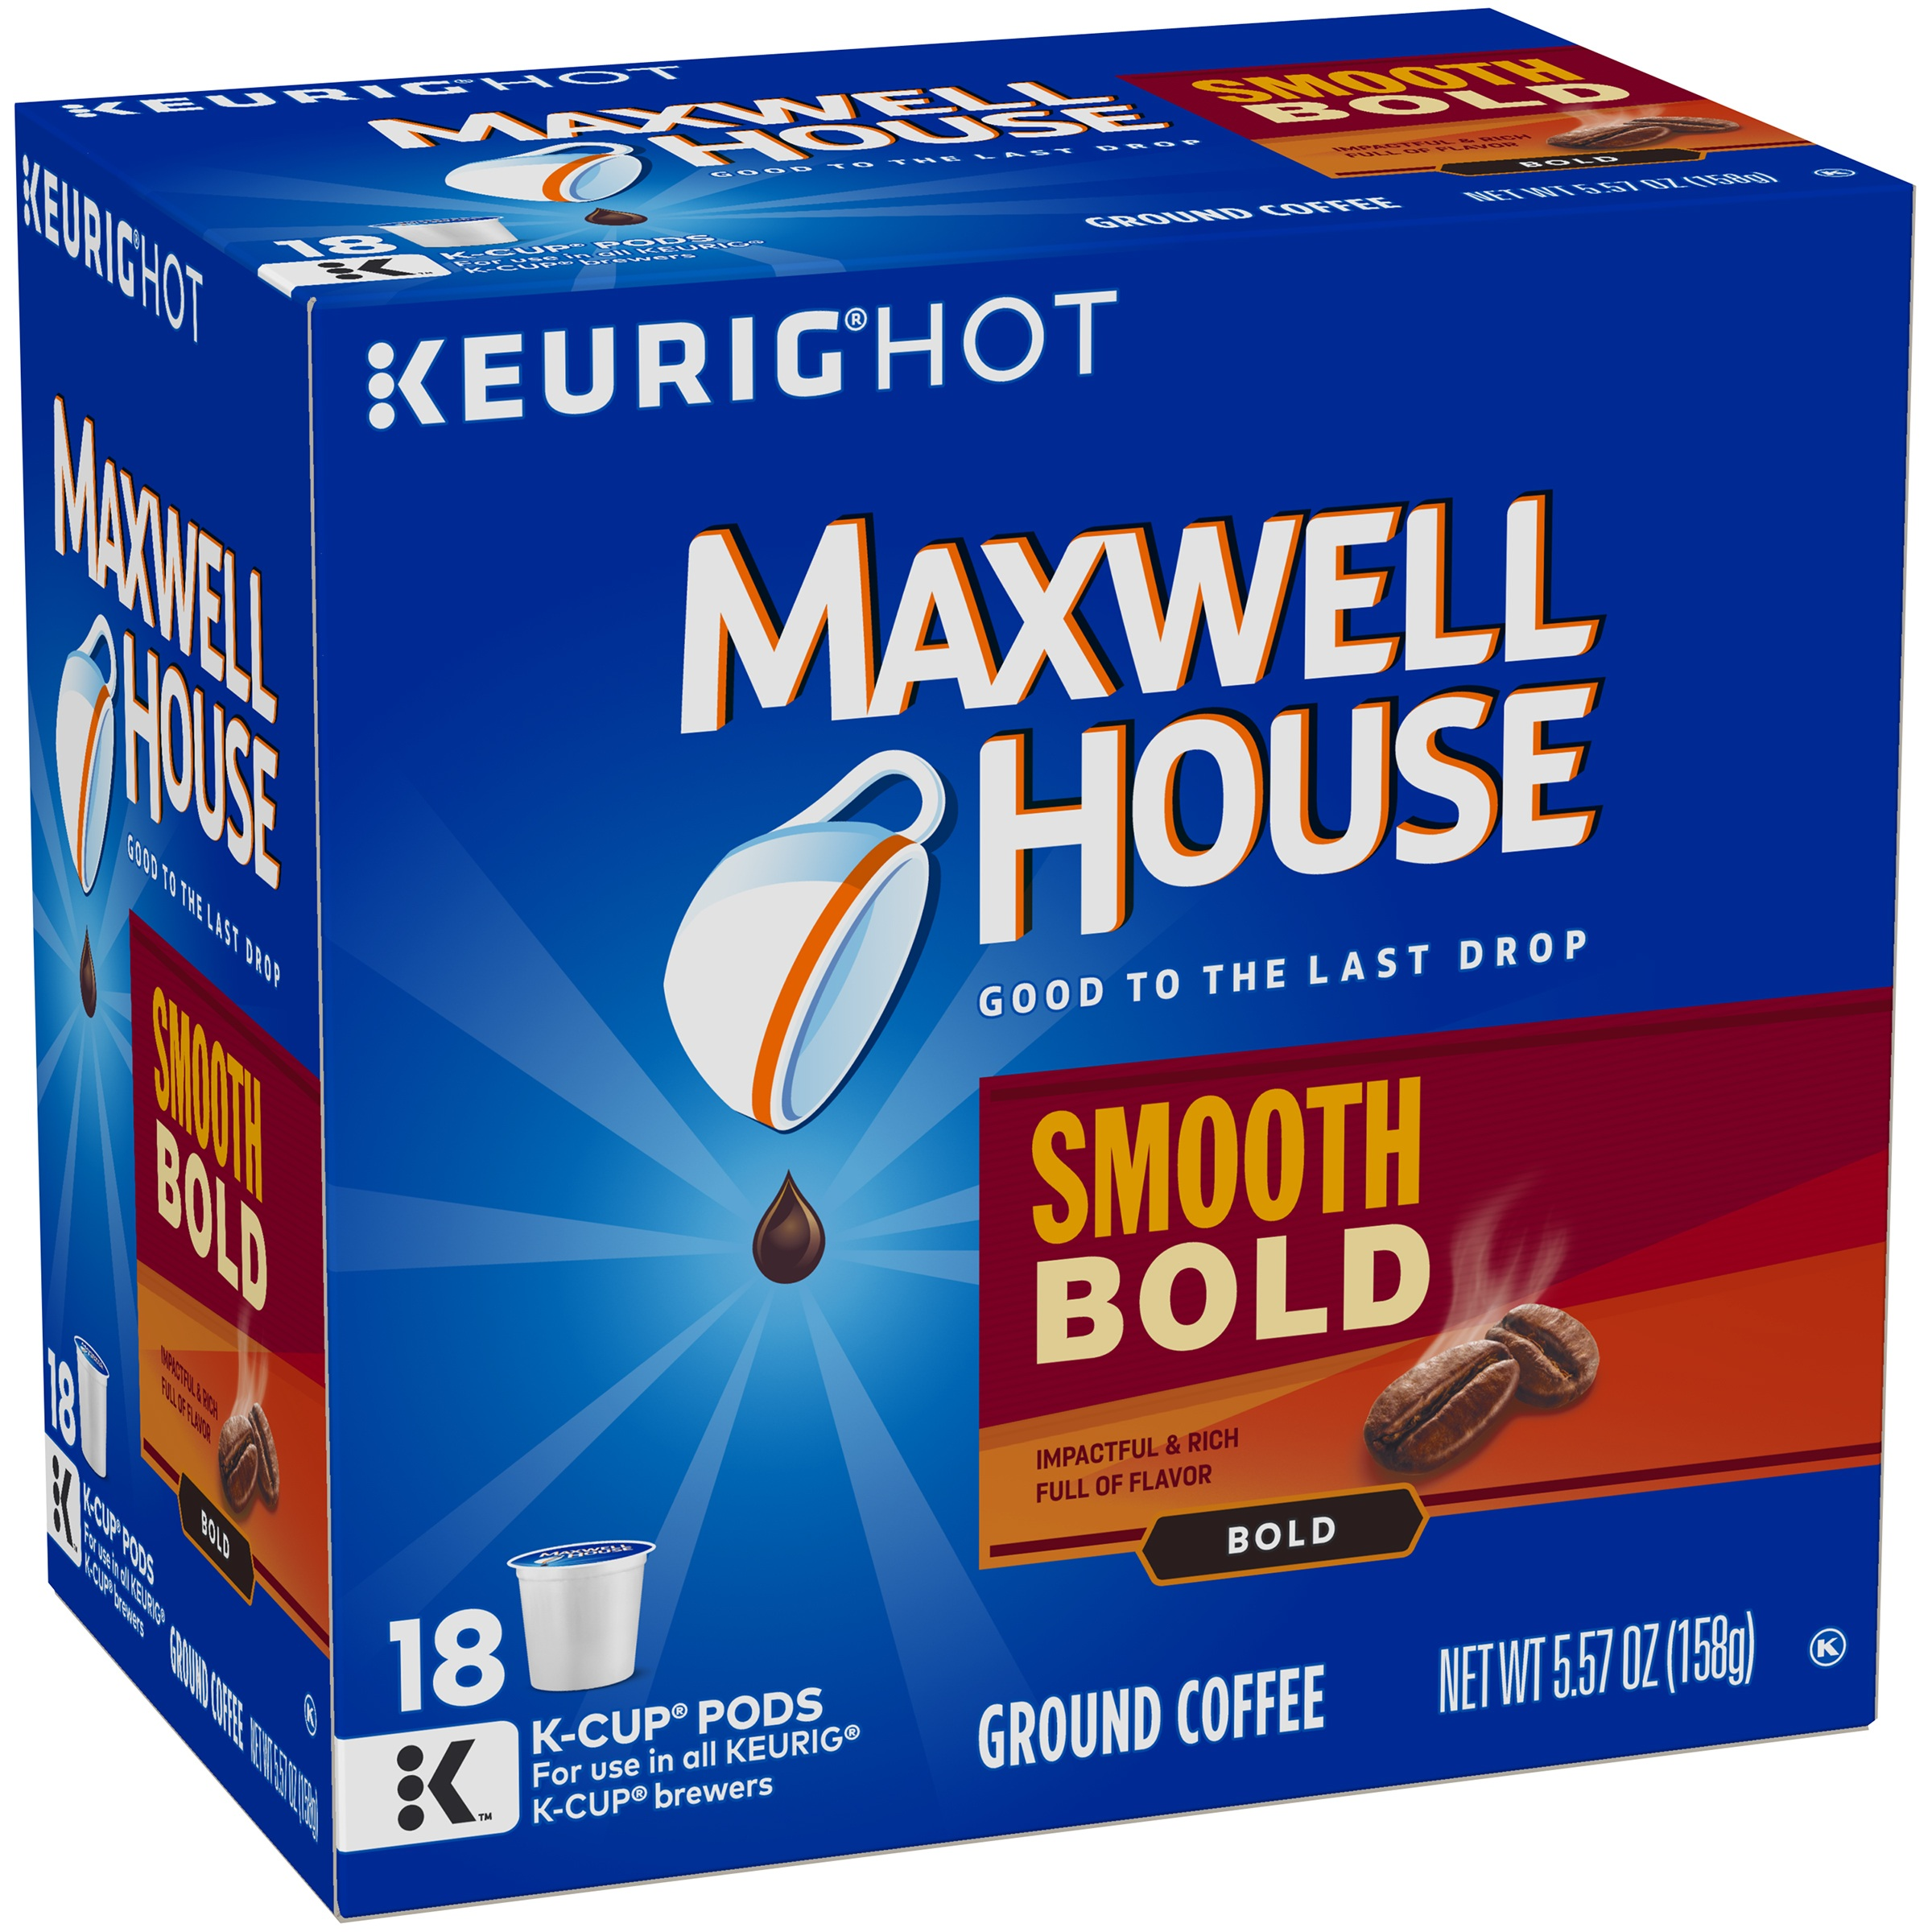 Maxwell House Smooth Bold Ground Coffee K-Cup® Pods 18 ct Box